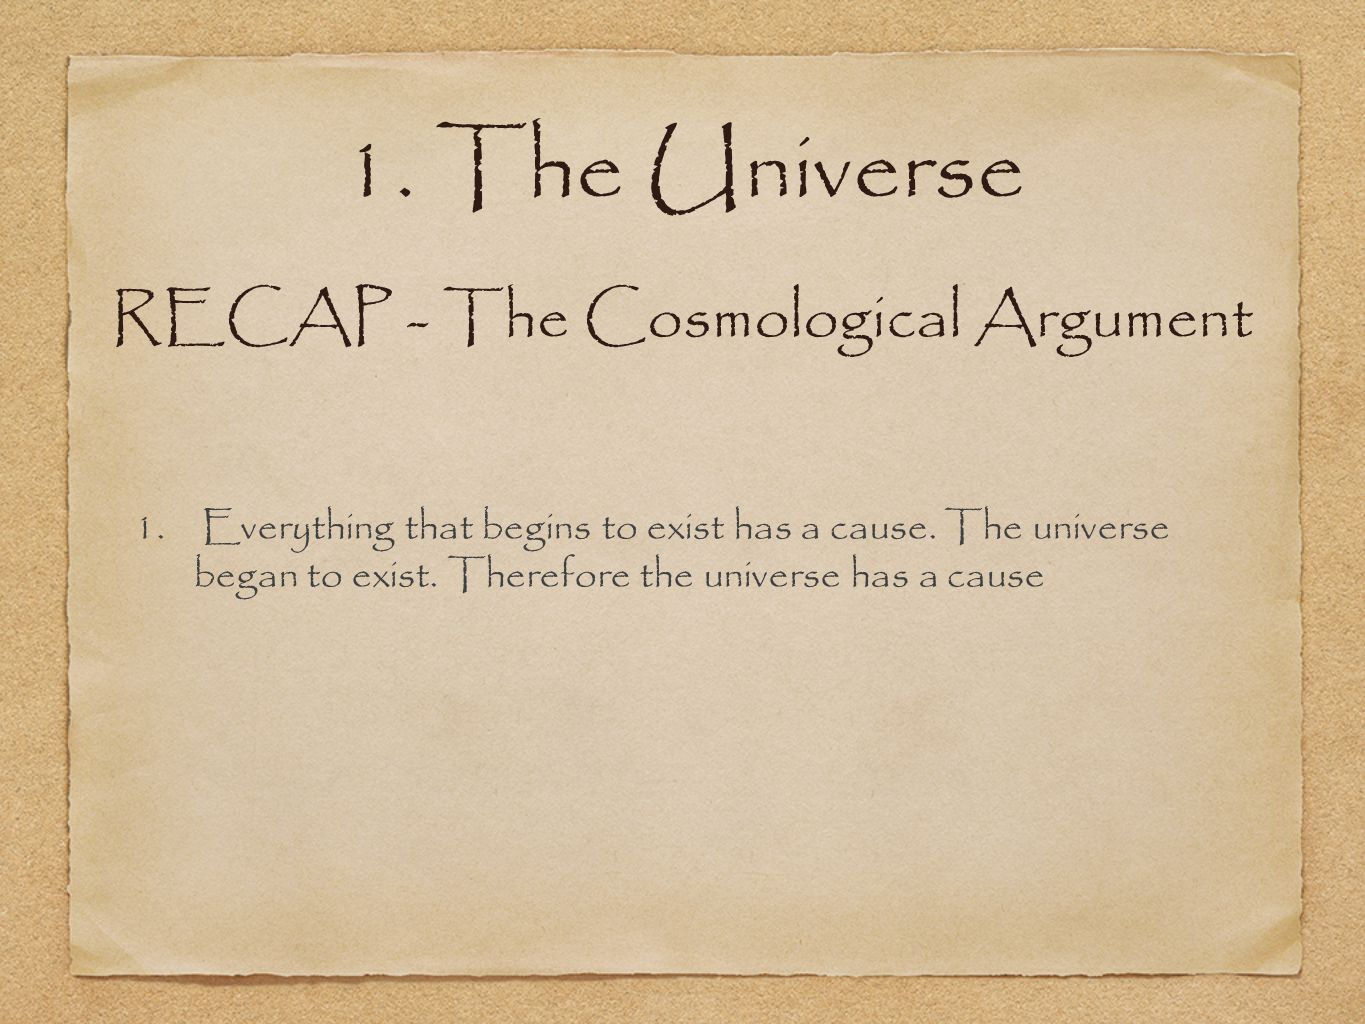 1. Everything that begins to exist has a cause. The universe began to exist.